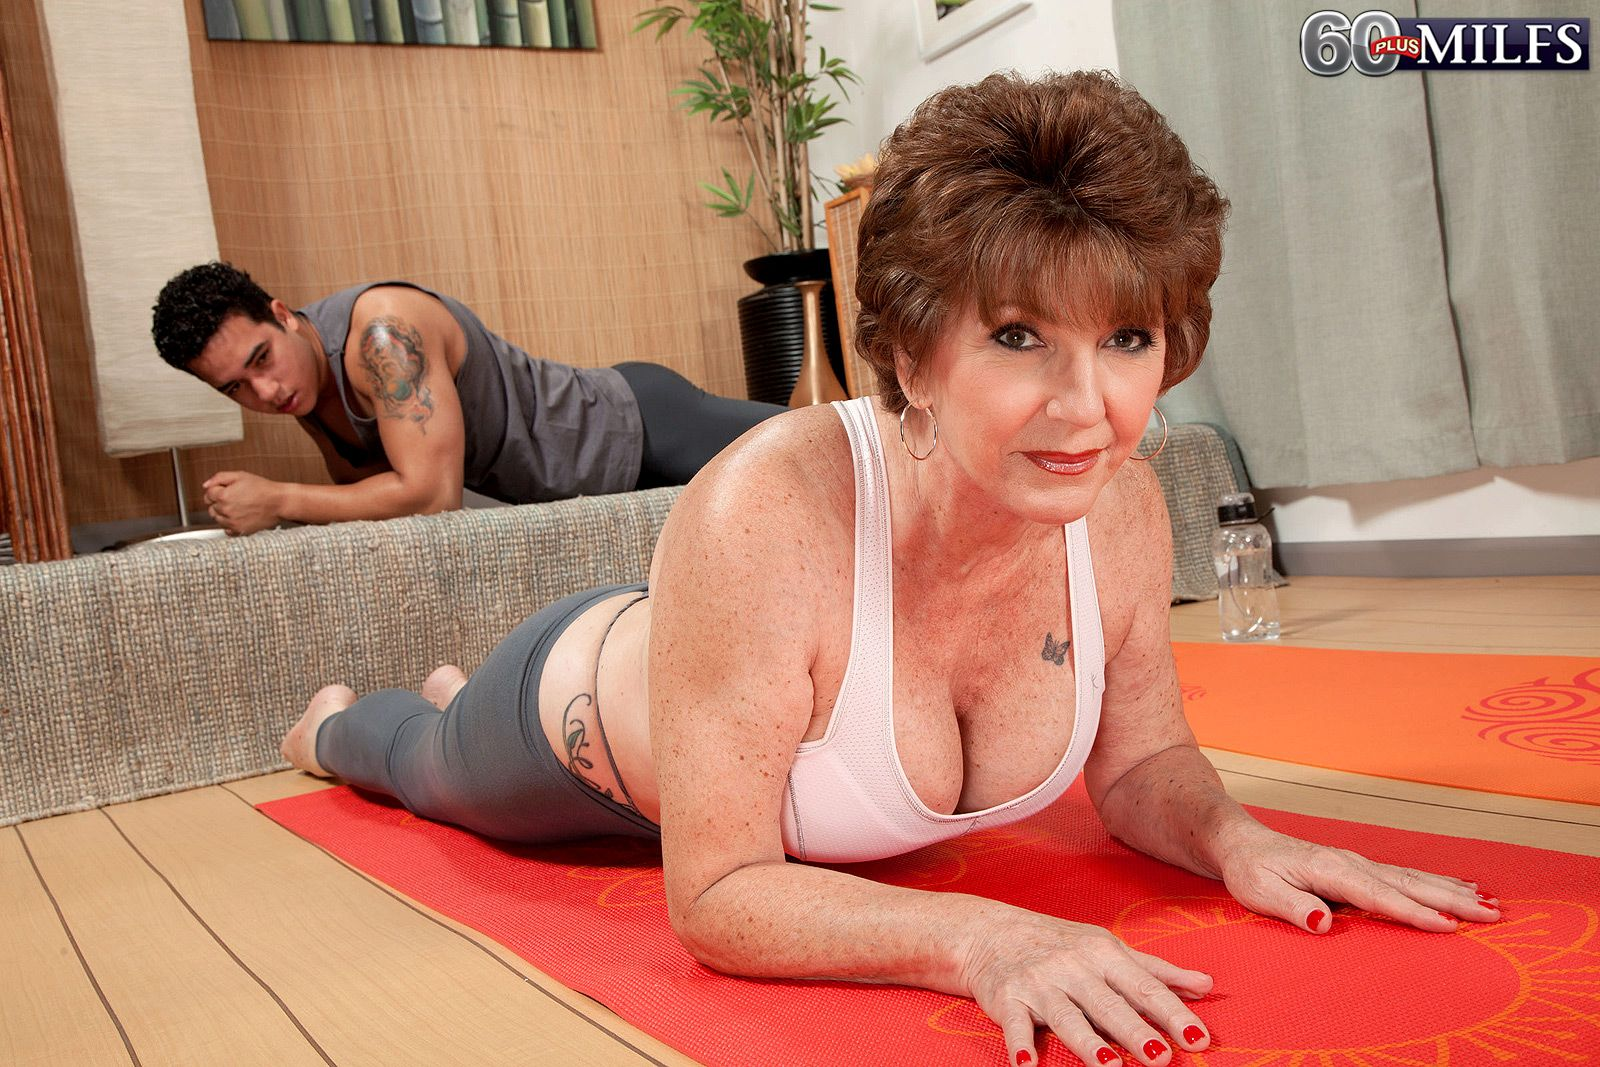 Best Hookup Sites For 60 Year Olds